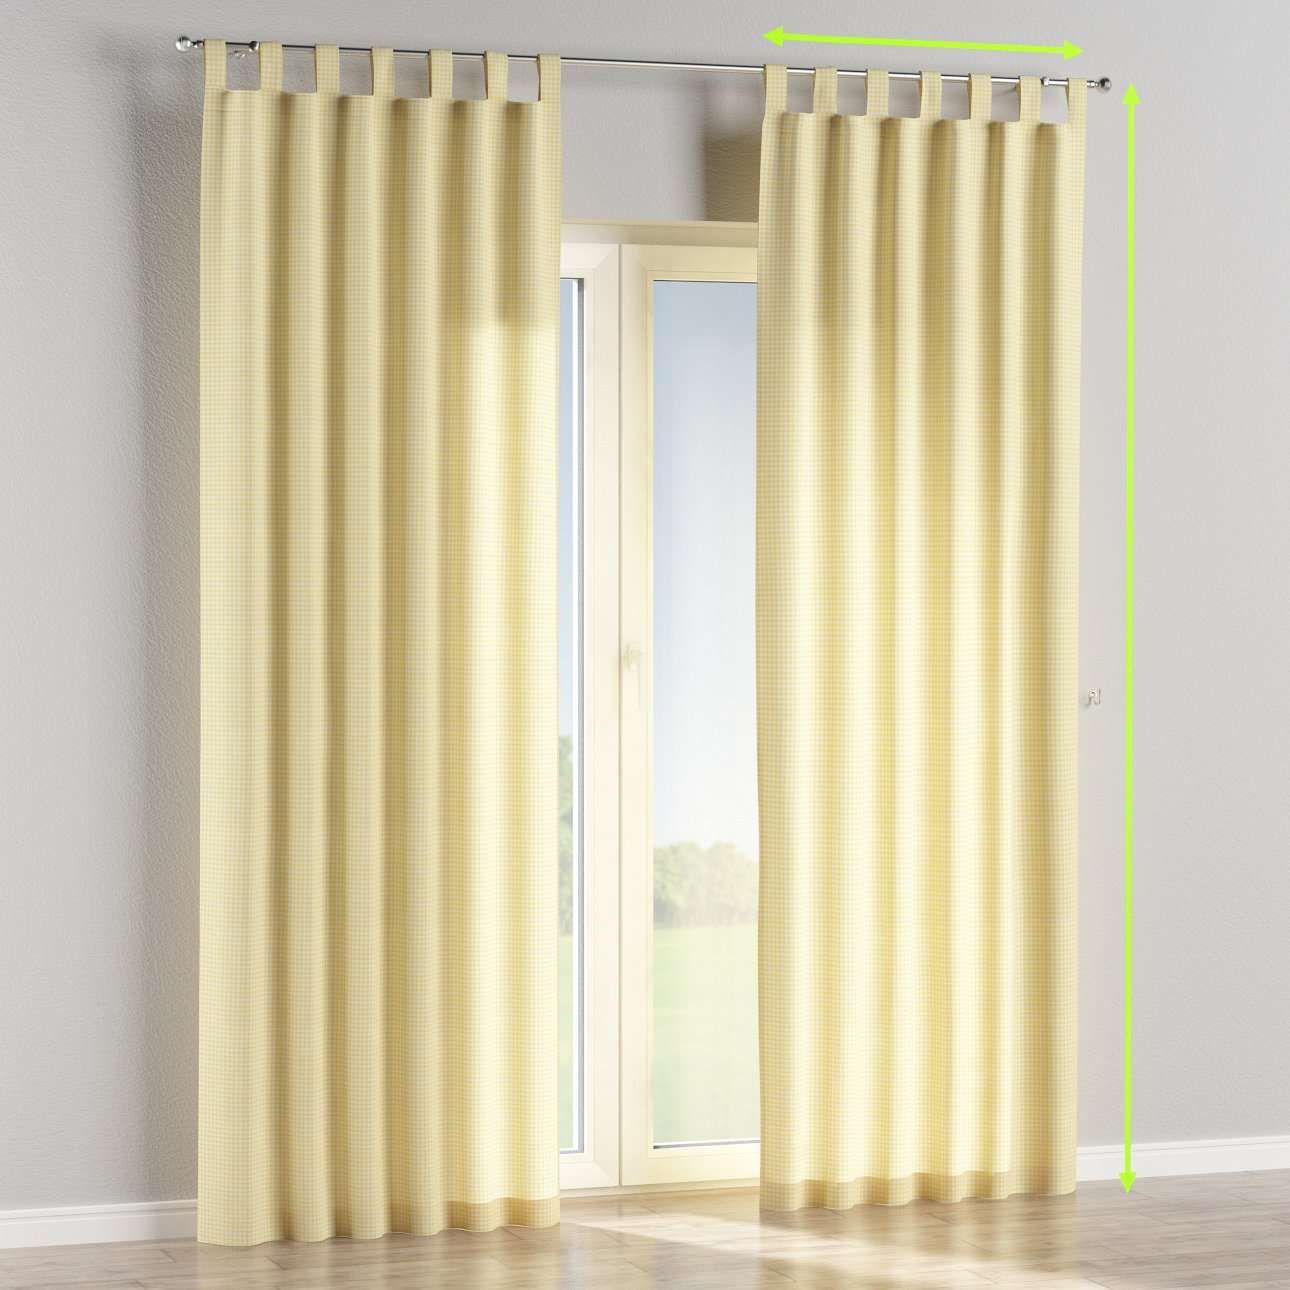 Tab top lined curtains in collection Ashley, fabric: 137-64